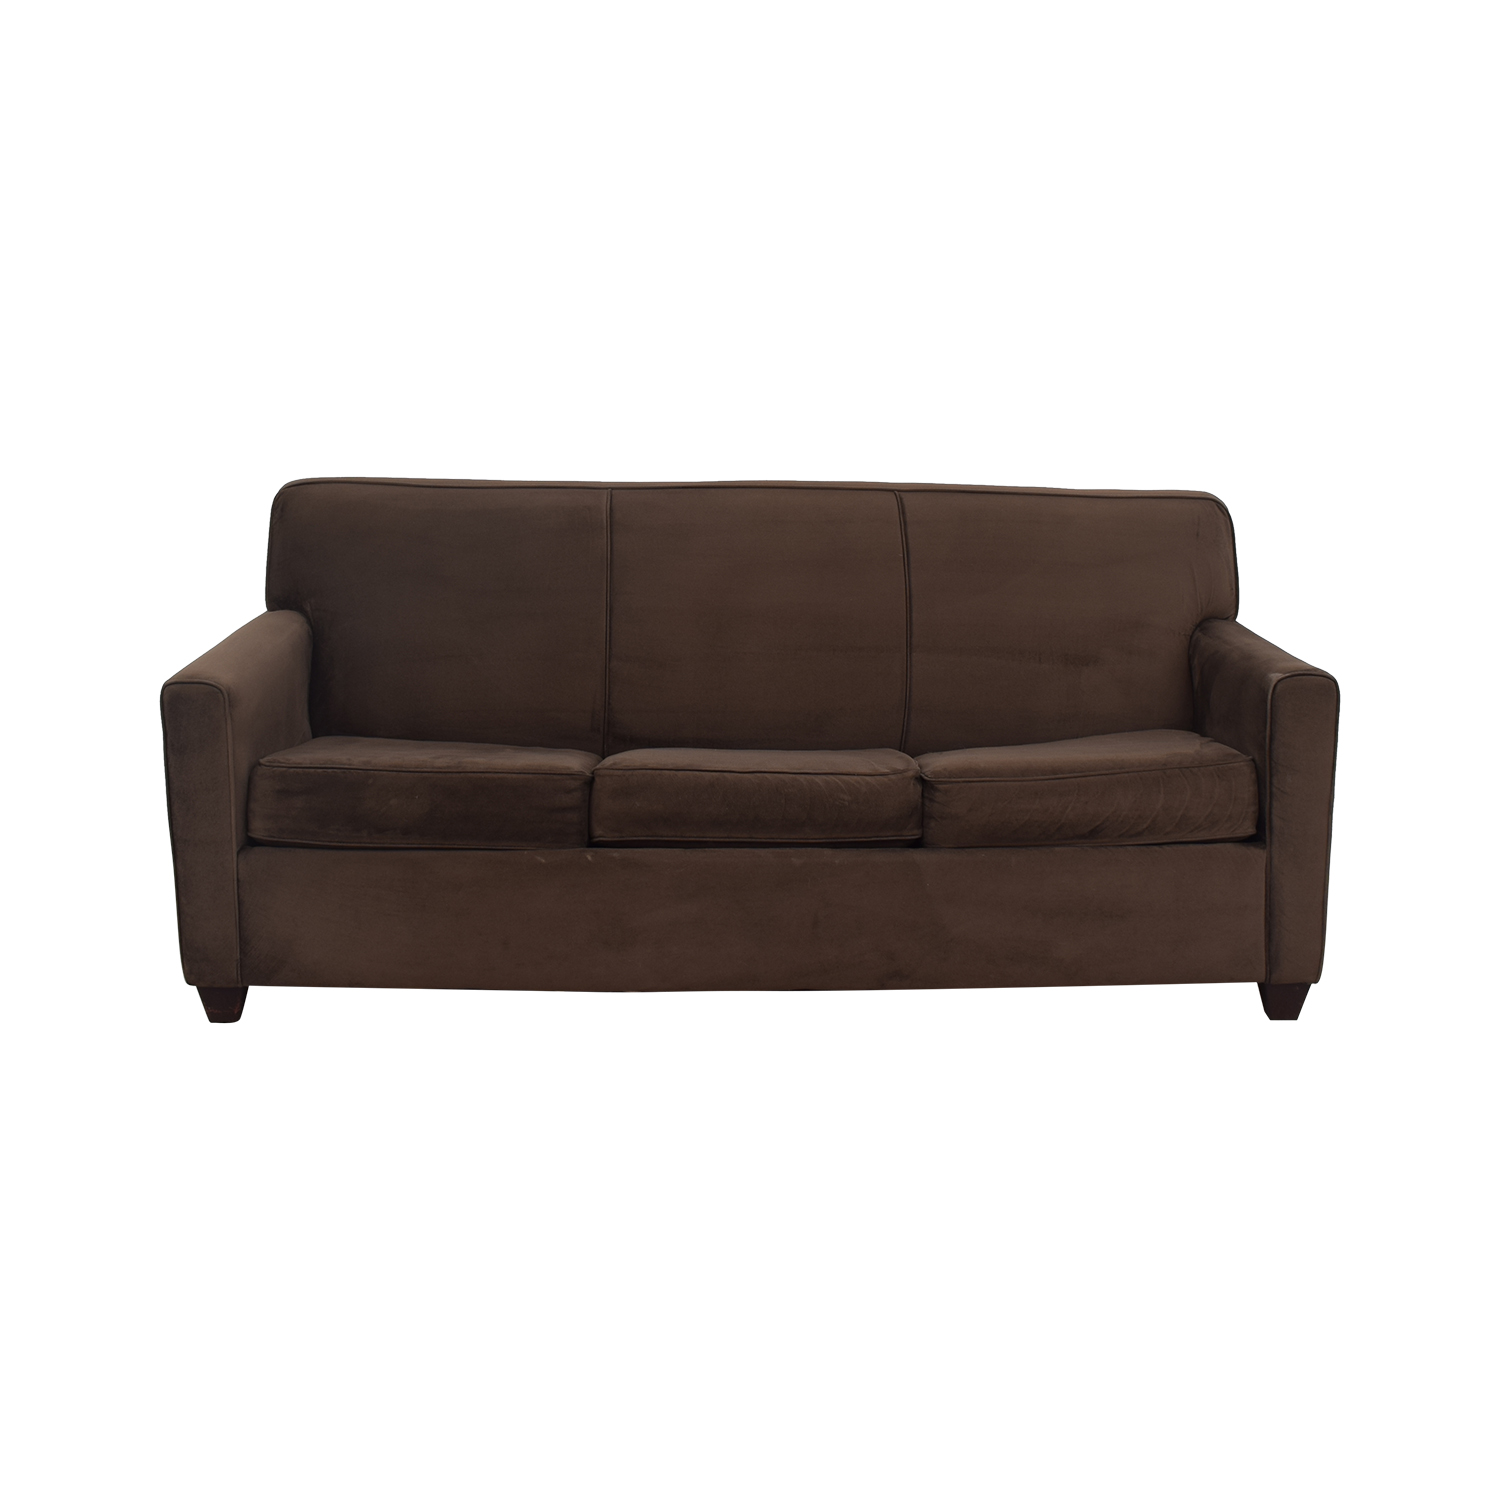 Raymour & Flanigan Raymour & Flanigan Queen Sleeper Sofa dimensions